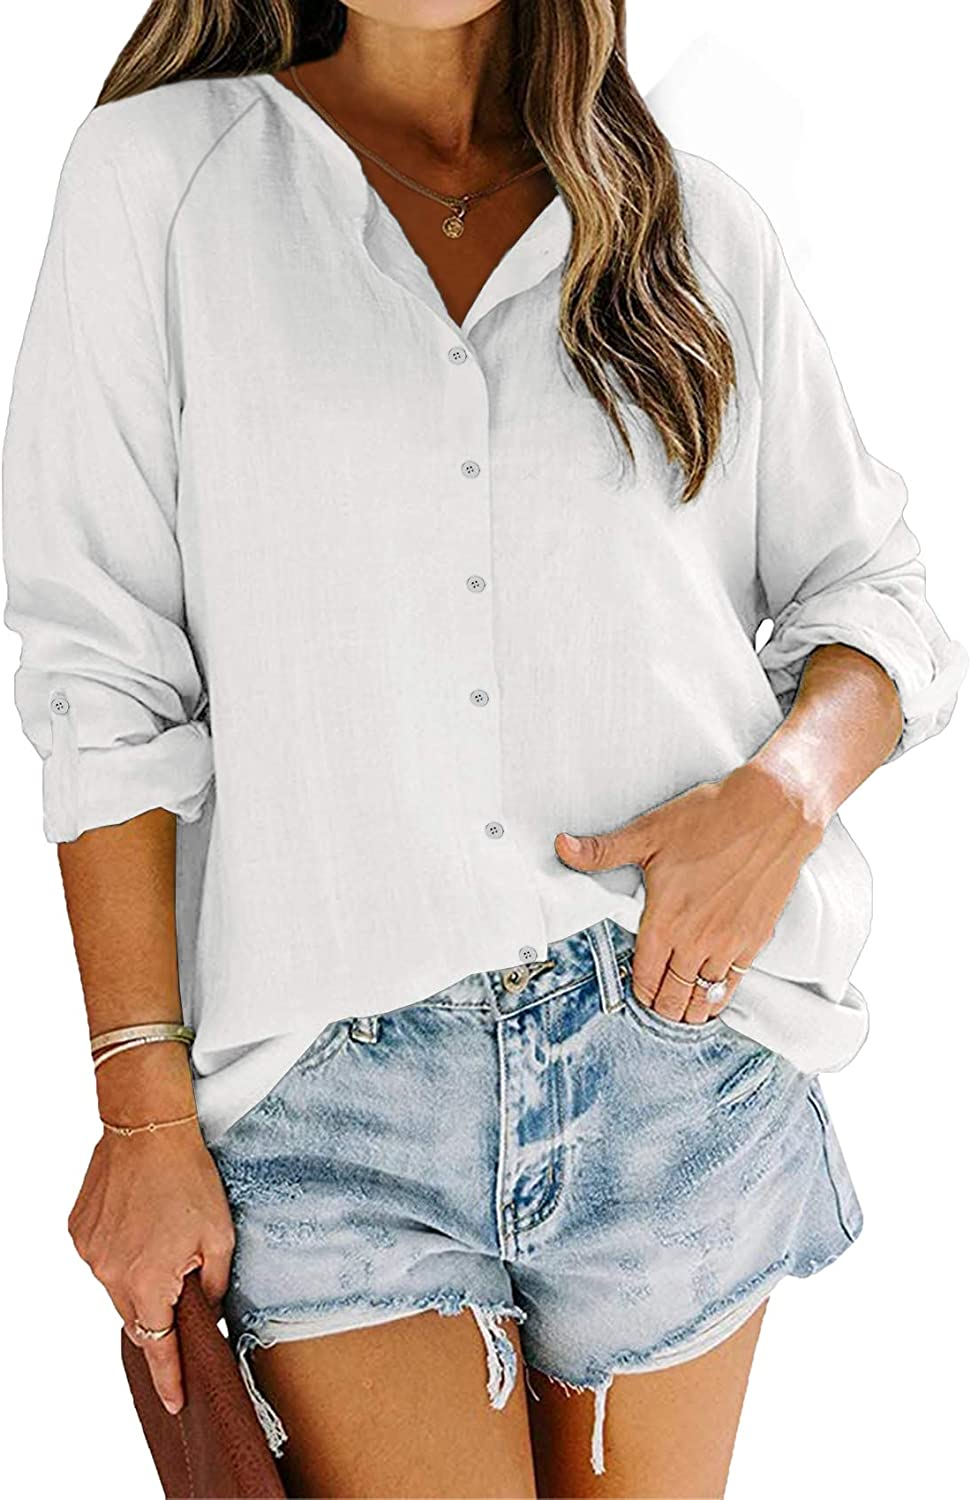 Ryannology Womens Button Down Long Sleeve V Neck Blouse Roll Up Sleeve Casual Work Plain Linen Cotton Shirts